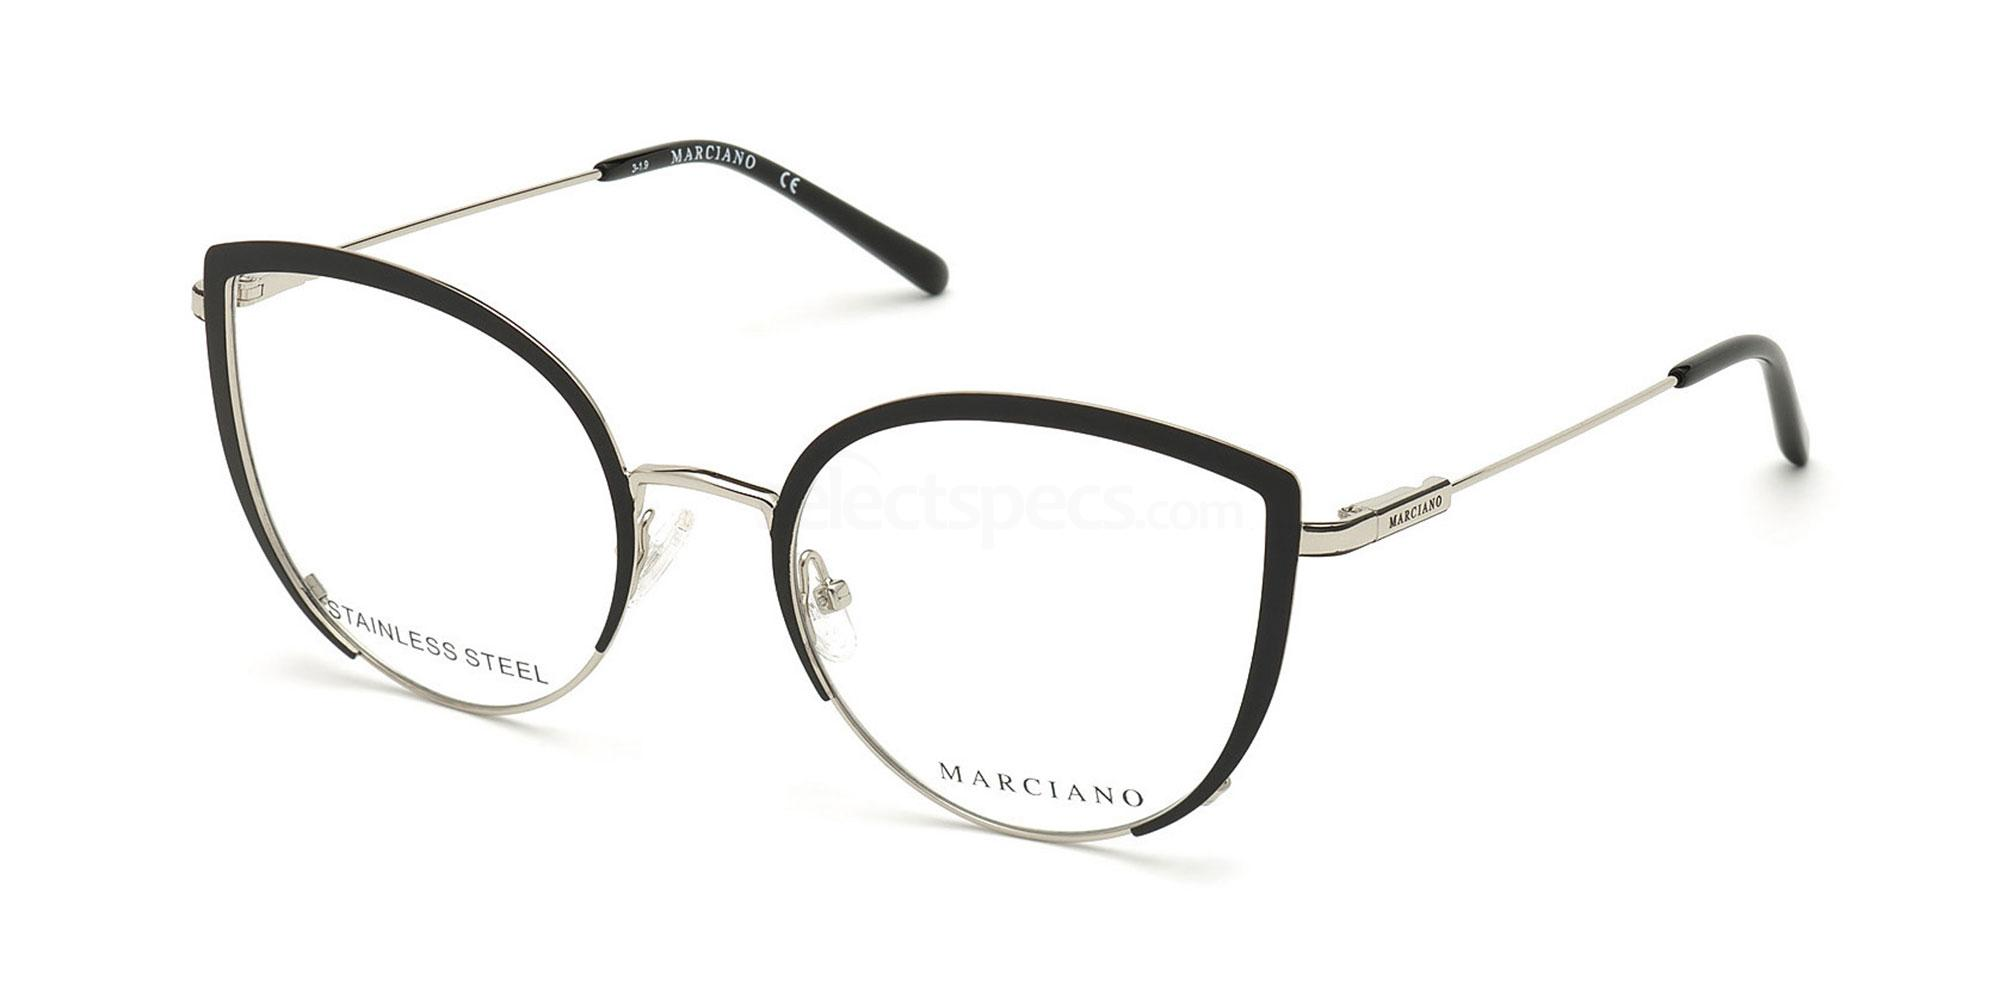 002 GM0350 Glasses, Guess by Marciano